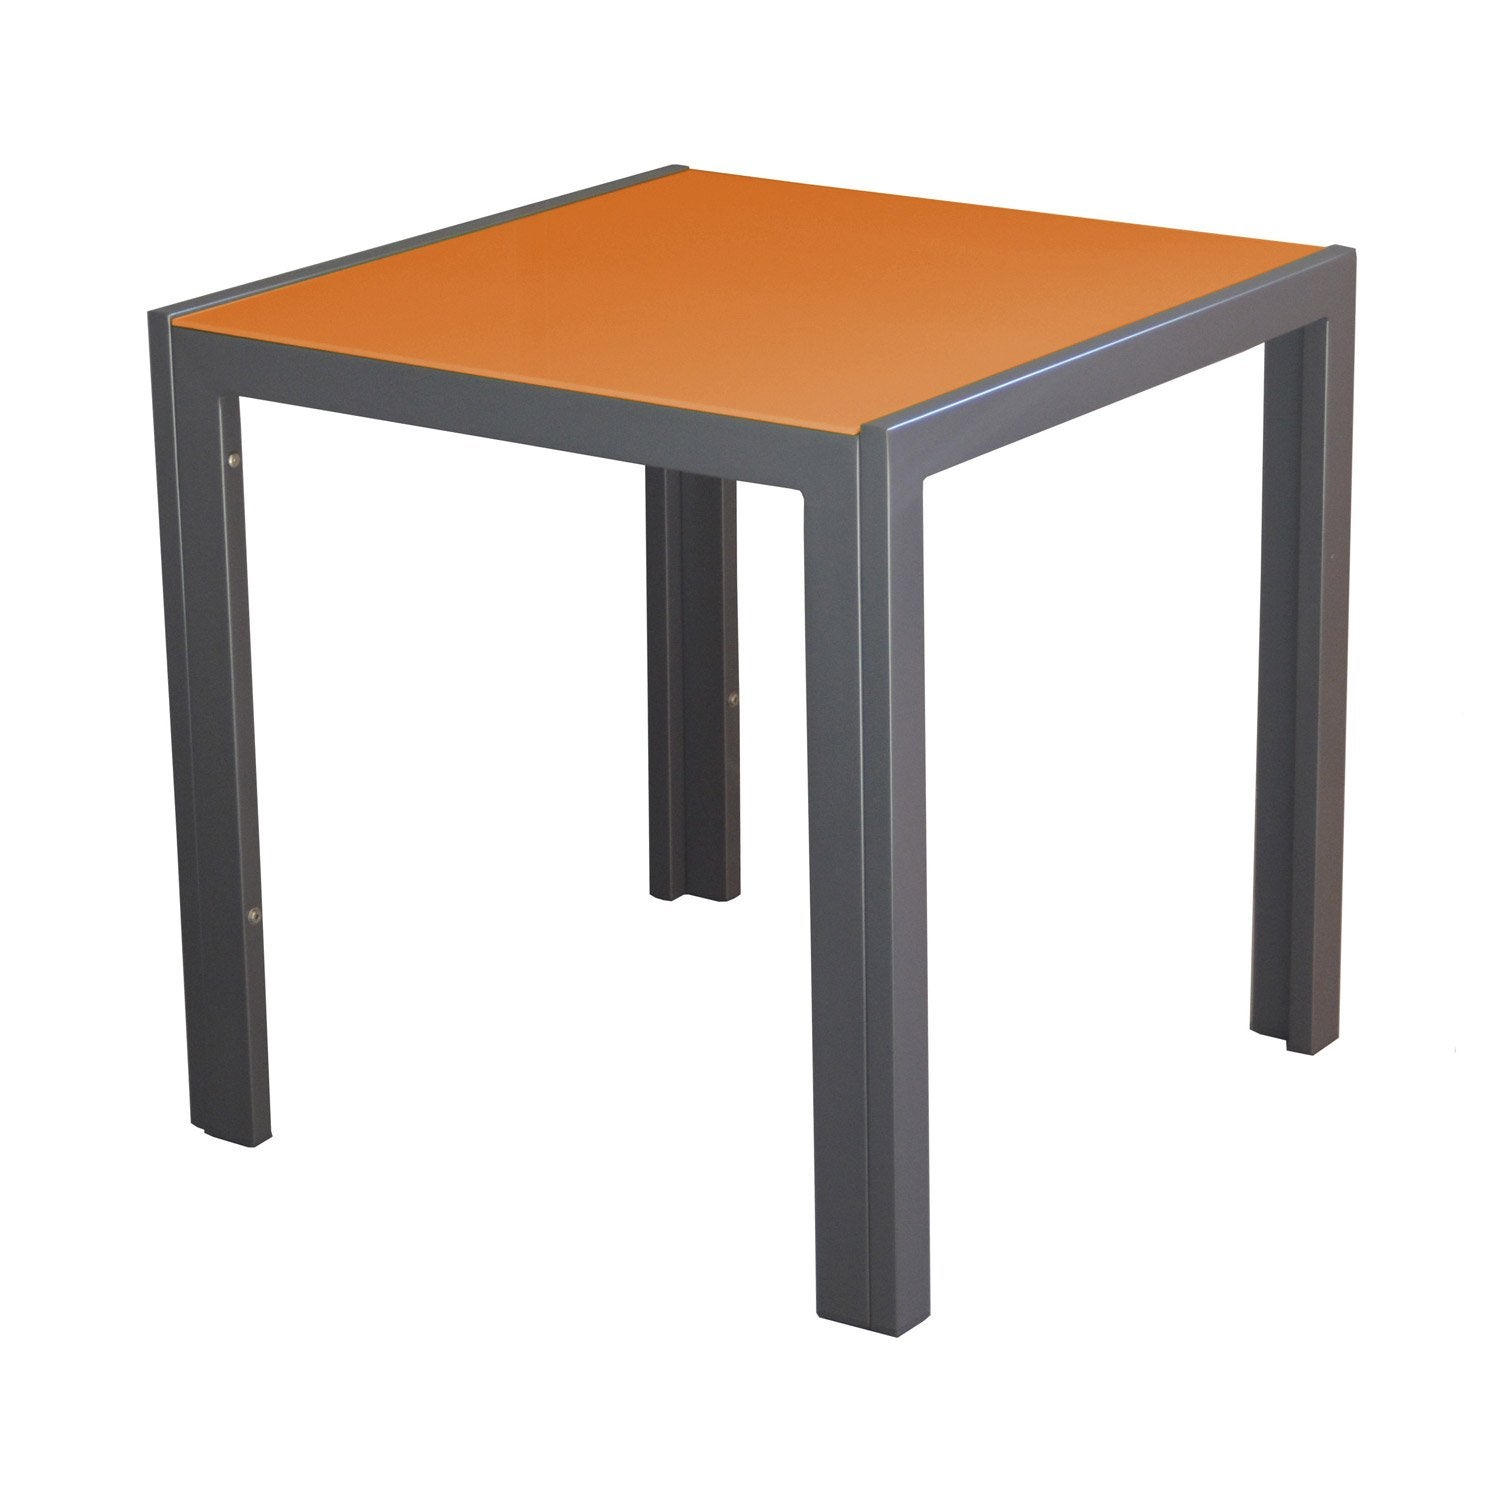 table basse carr e grey orange 2 personnes leroy merlin. Black Bedroom Furniture Sets. Home Design Ideas